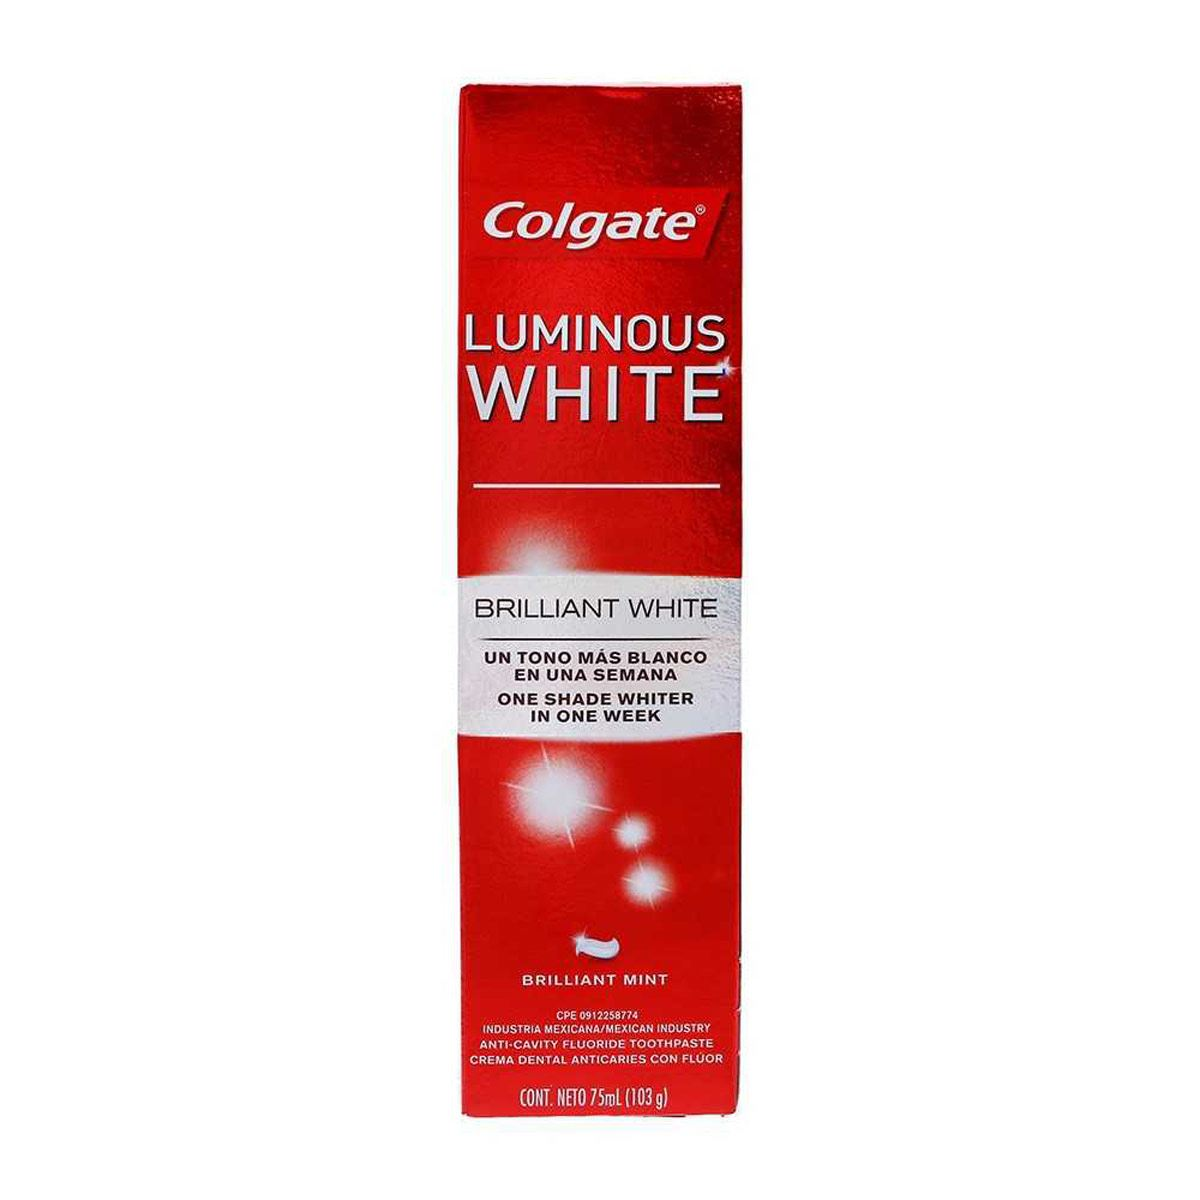 Crema dental Lunimous White 75ml  Colgate